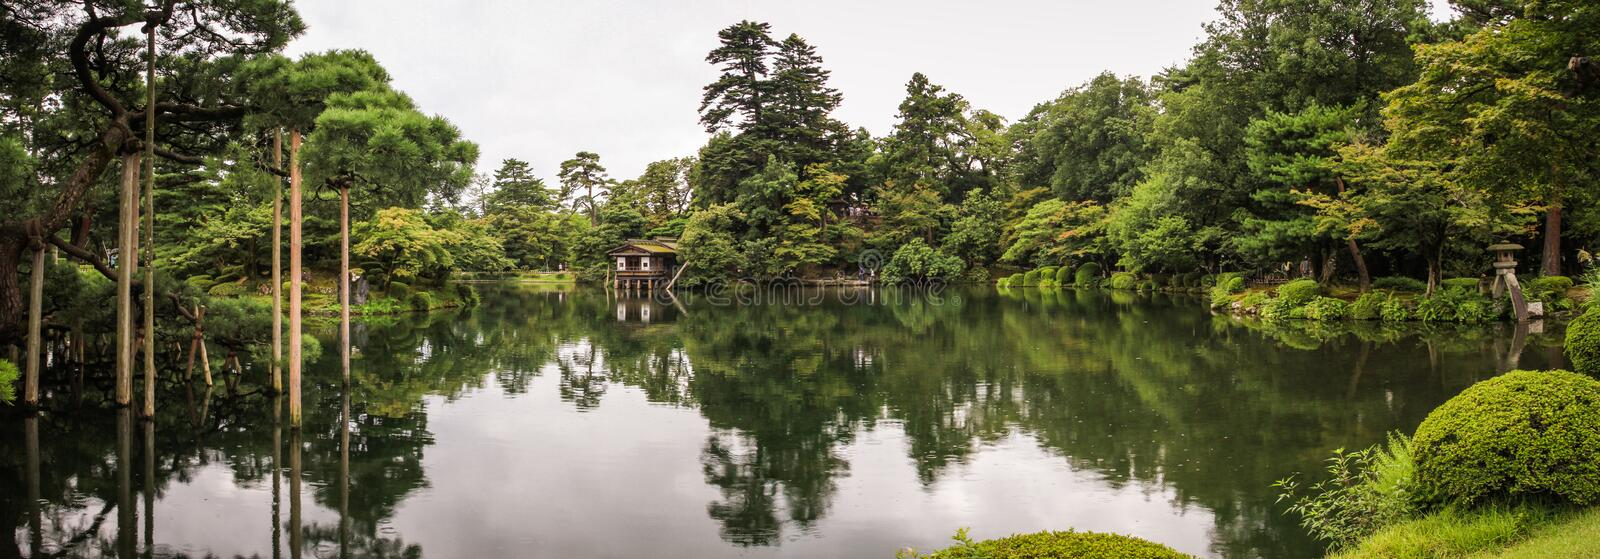 Panorama of the picturesque Kenroku-en gardens, Kanazawa, Ishikawa, Japan. Kenroku-en located in Kanazawa, Ishikawa, Japan, is an old private garden. Along with stock photos